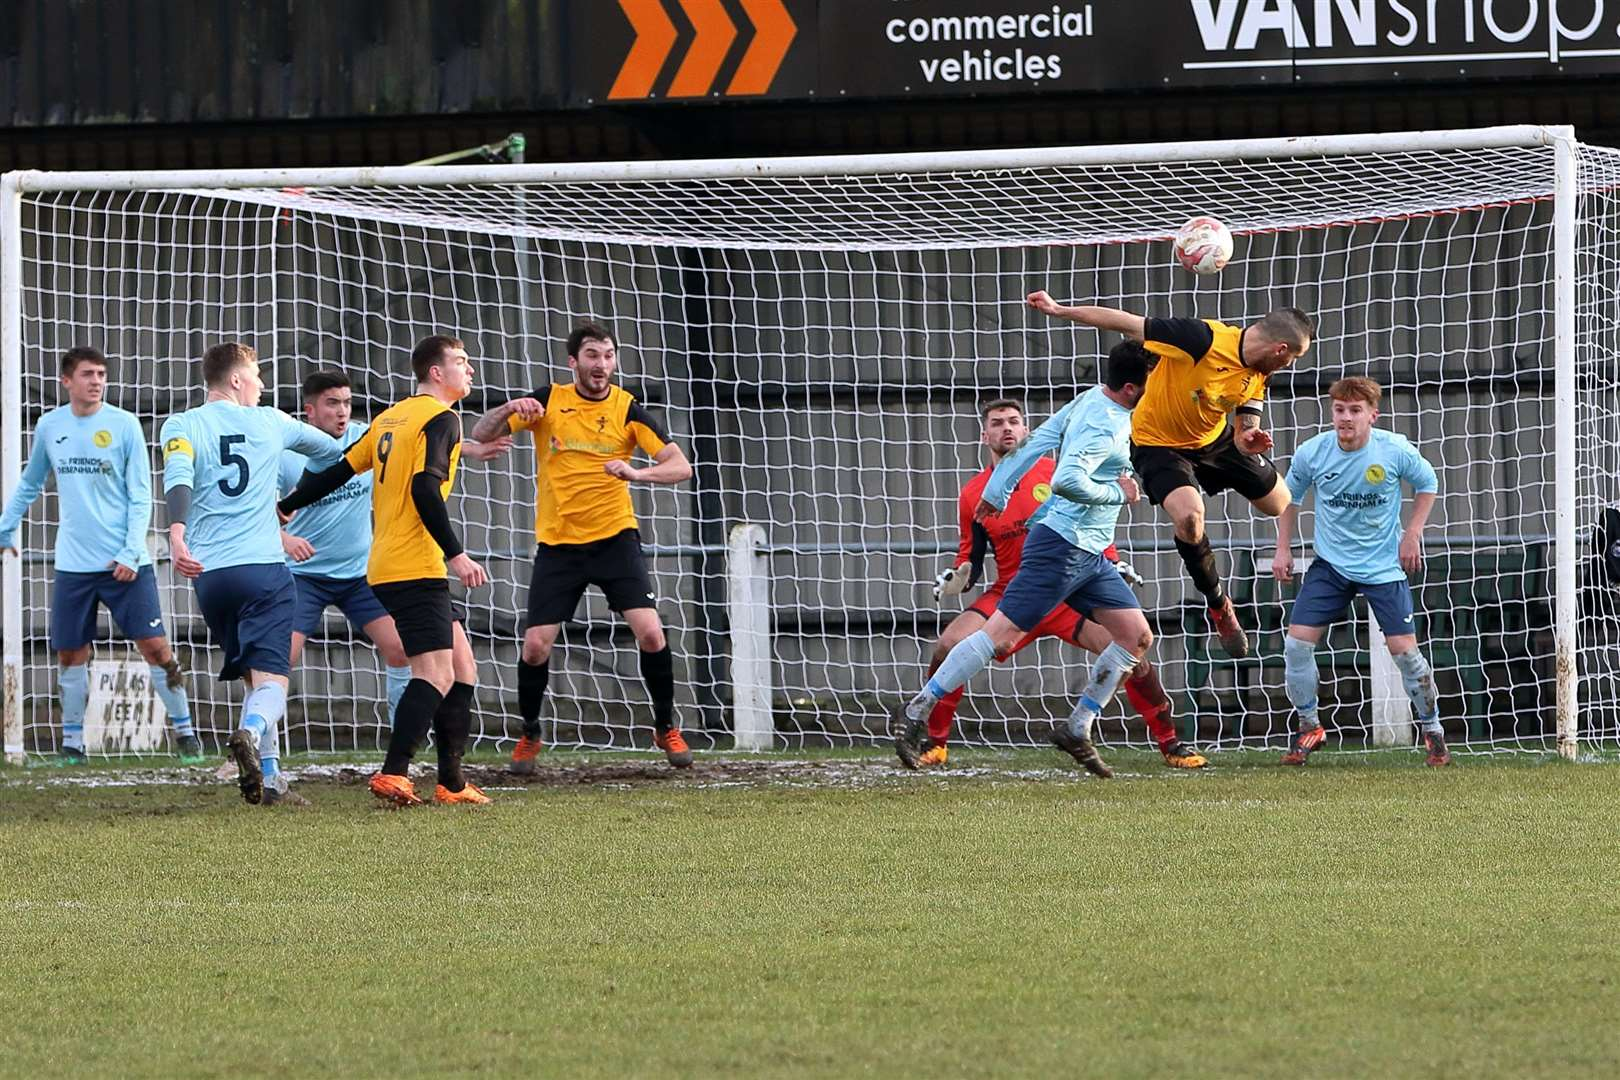 Matty Franks heads home Fakenham's second goal from a near-post corner. The Ghosts won 4-0 at home to Debenham LC to go sixth in the Thurlow Nunn Division One North standings. (6946094)